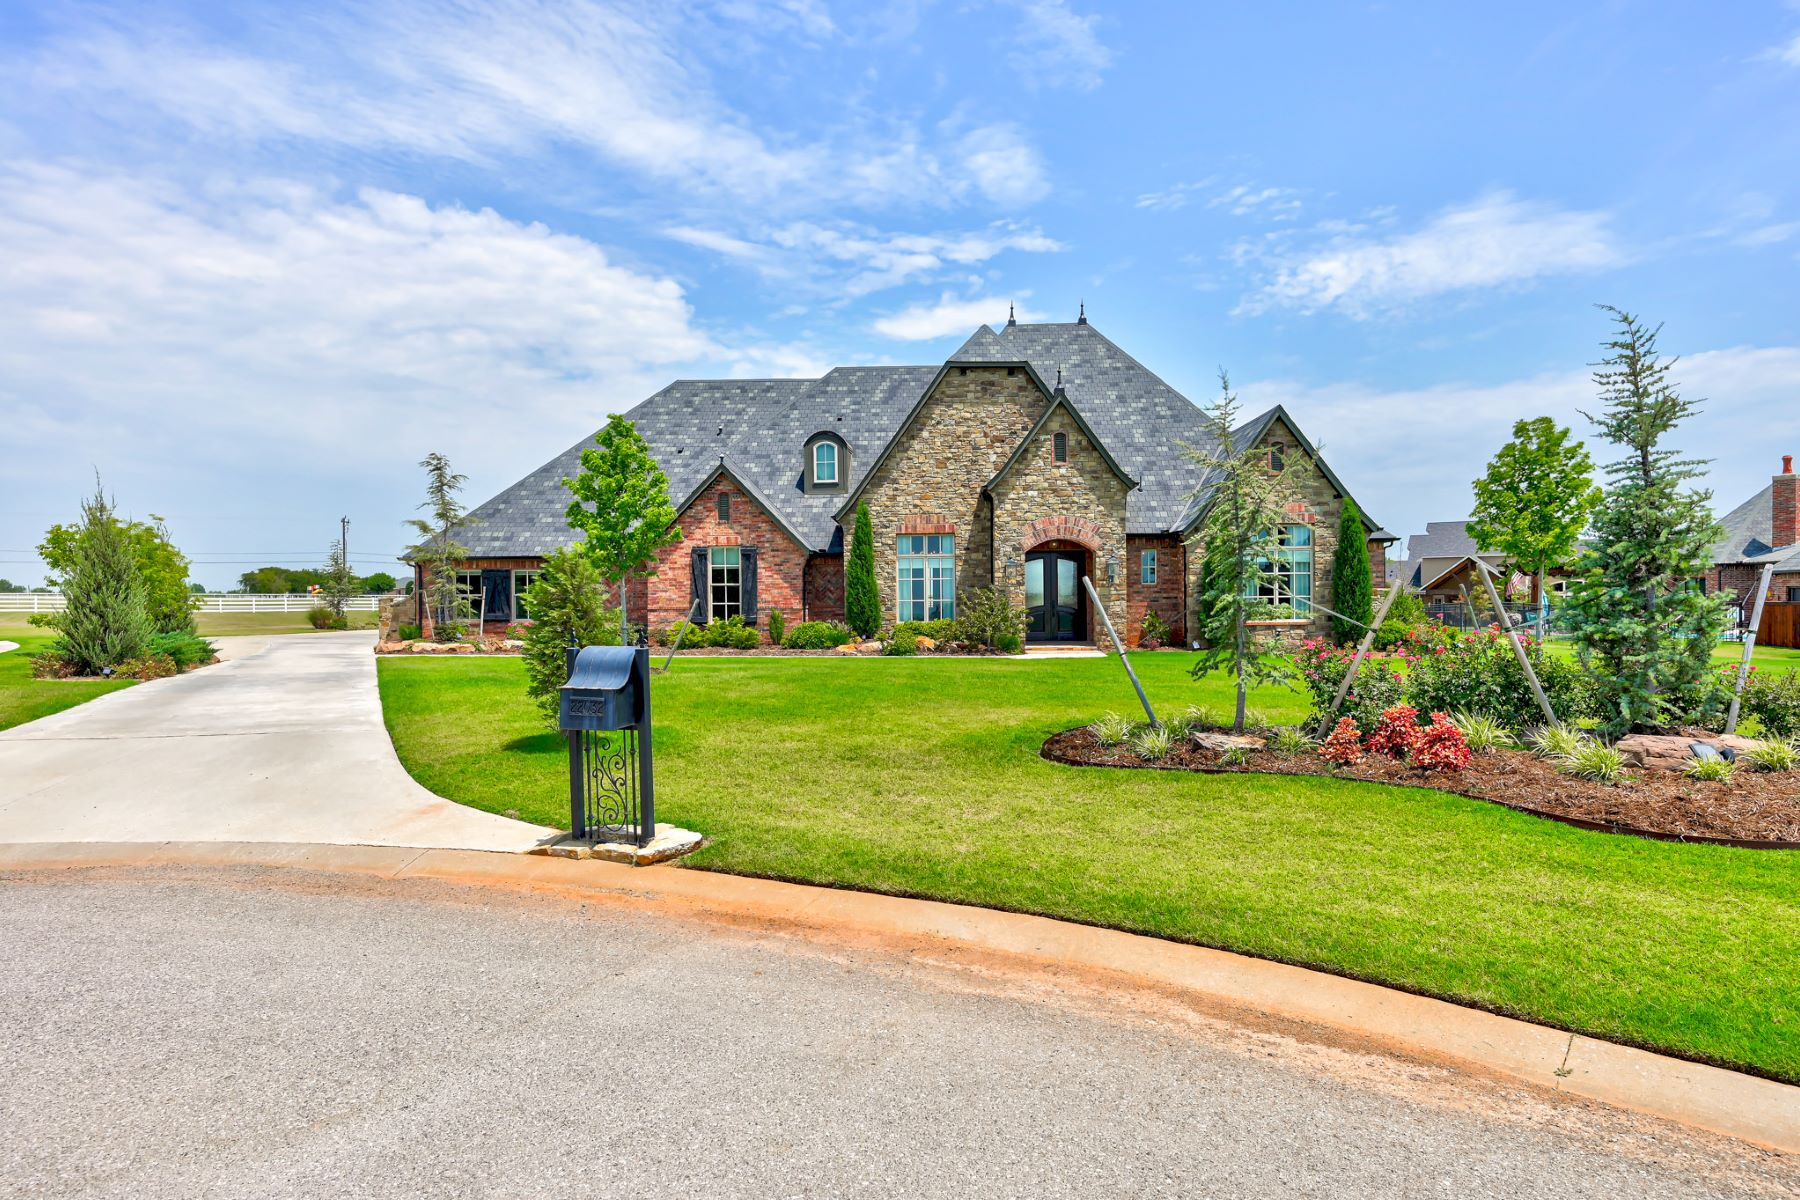 Single Family Homes for Active at Cul-de-Sac Villa in Villagio 22032 Cricklewood Court Edmond, Oklahoma 73012 United States